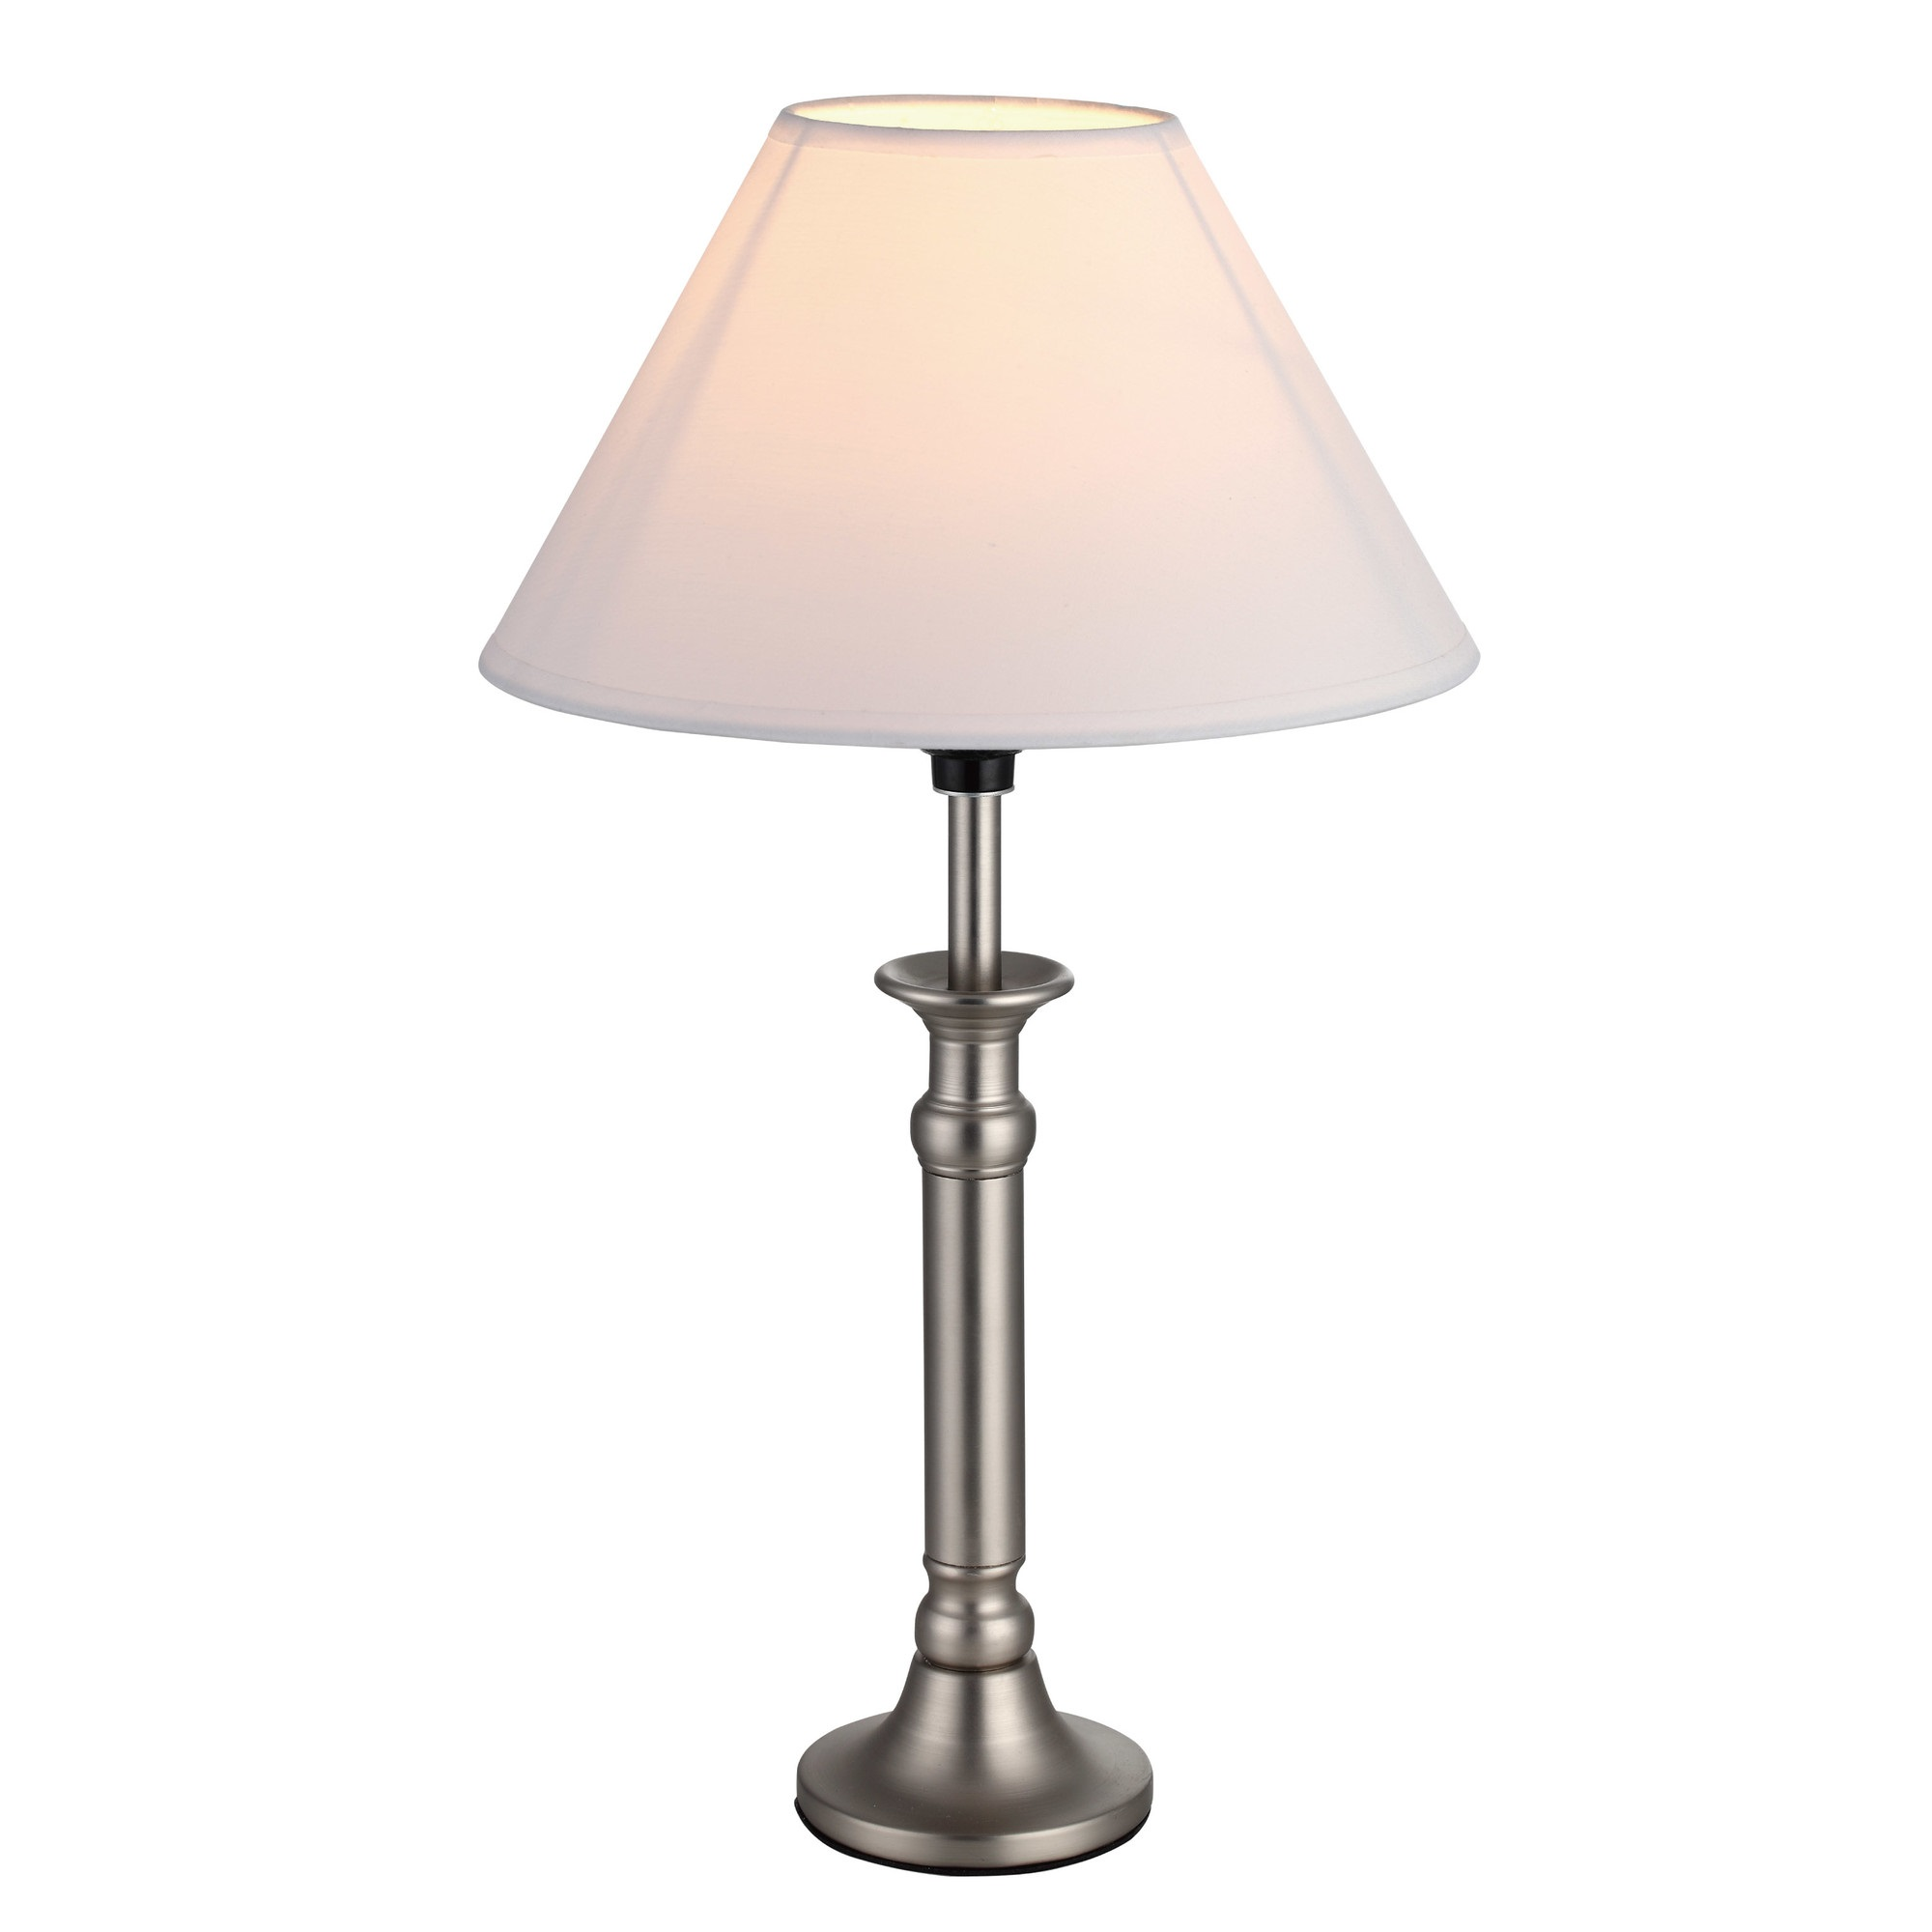 Andover Mills Table Lamp With Shade KVN225DDP L Brilliant